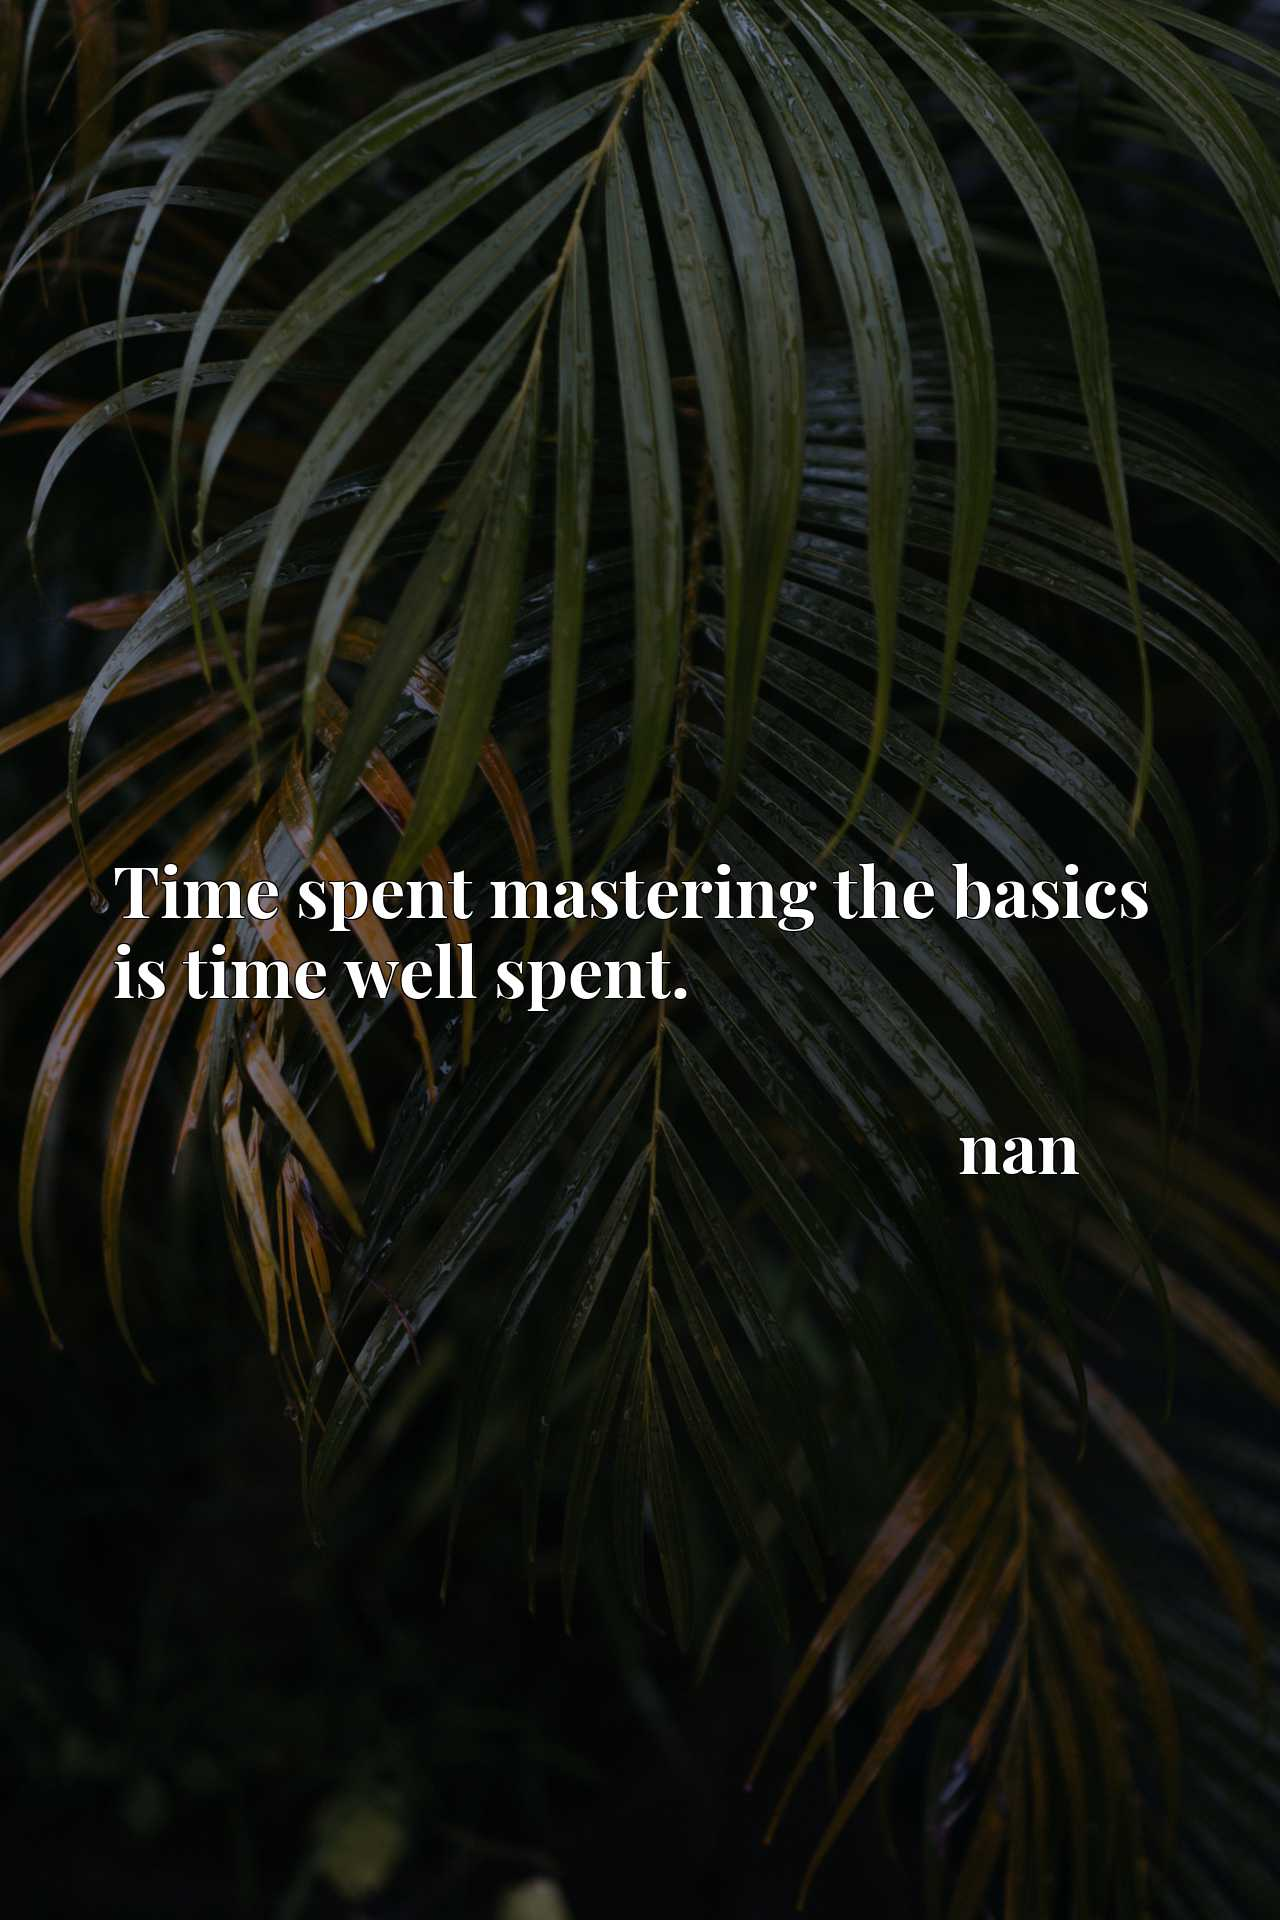 Time spent mastering the basics is time well spent.